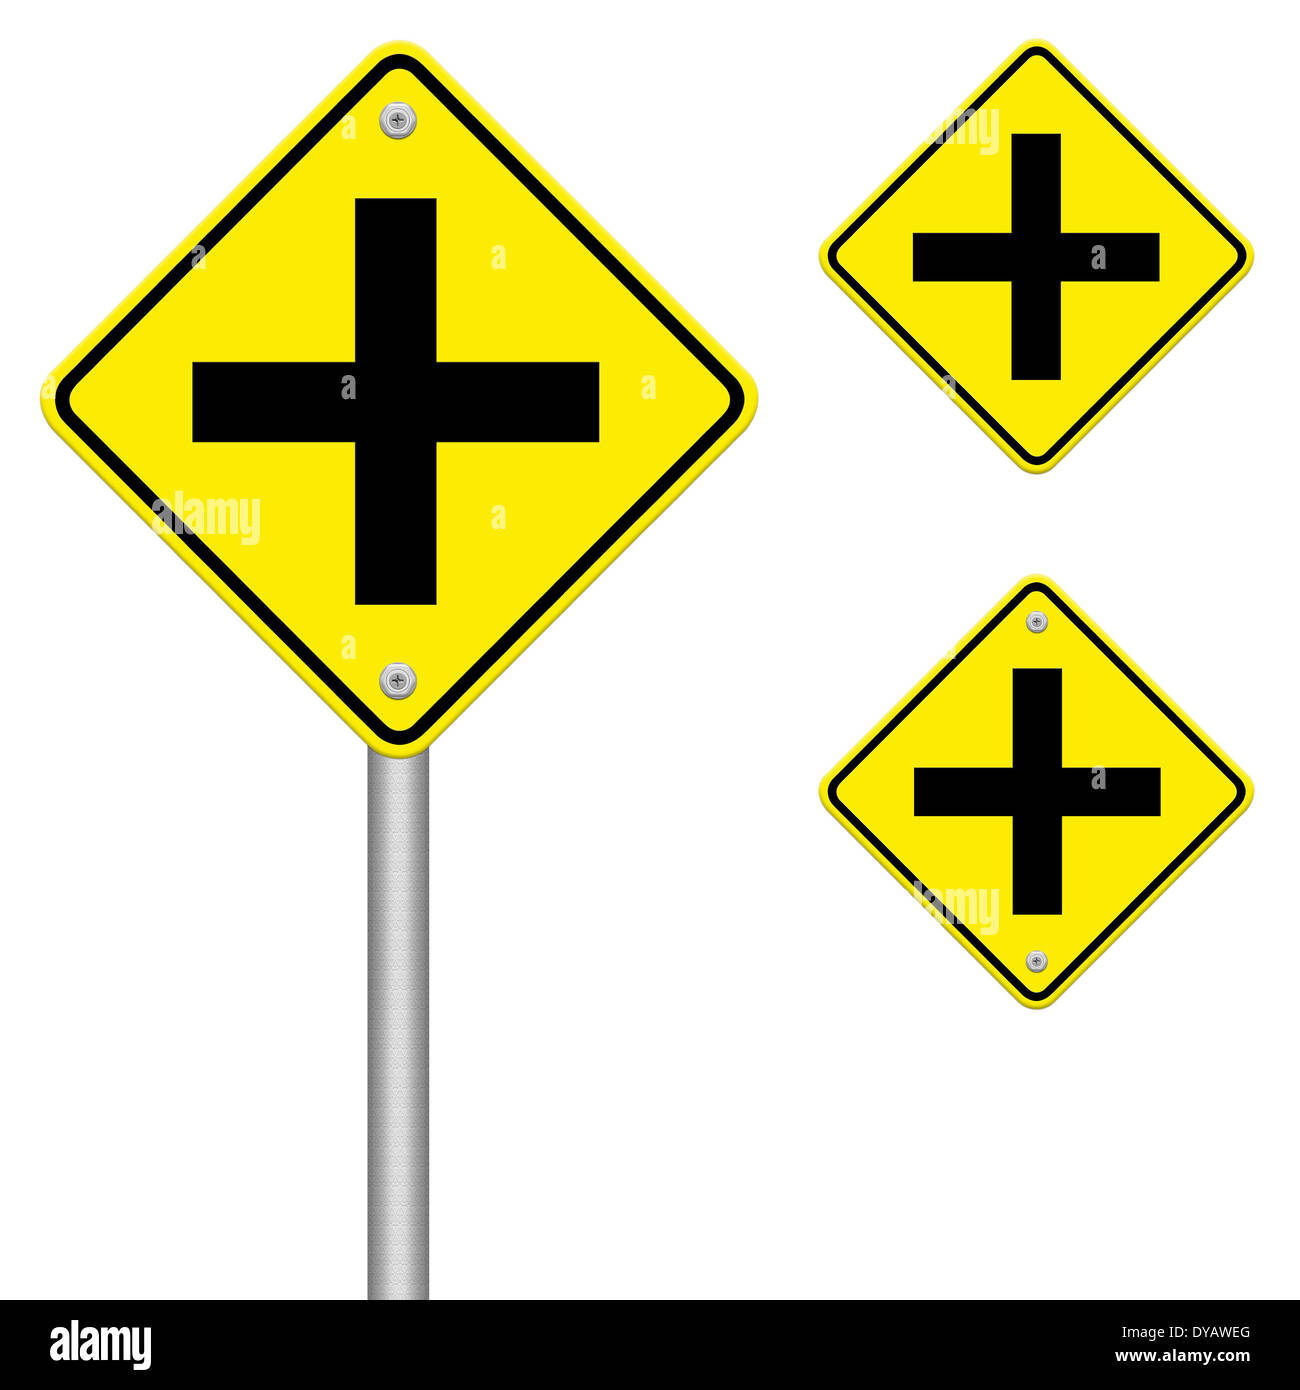 Road Sign Crossing - Stock Image